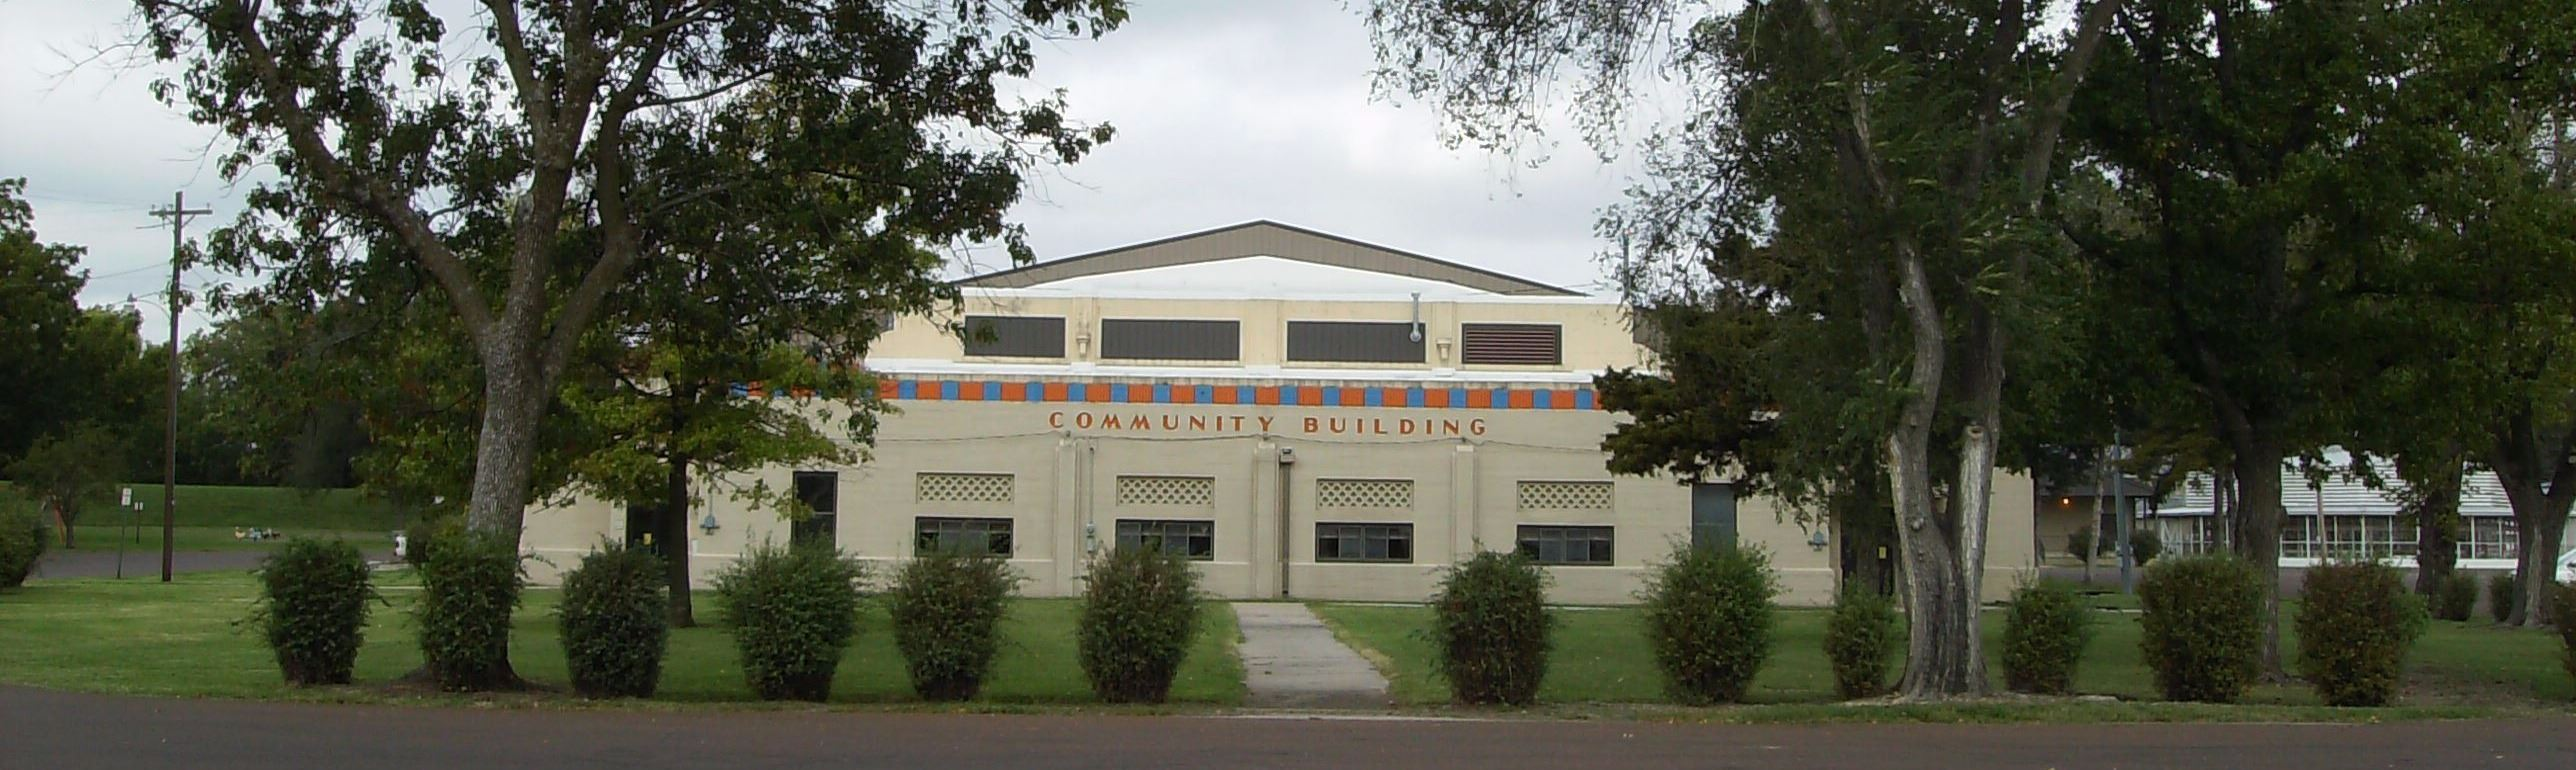 Recreation Building Image